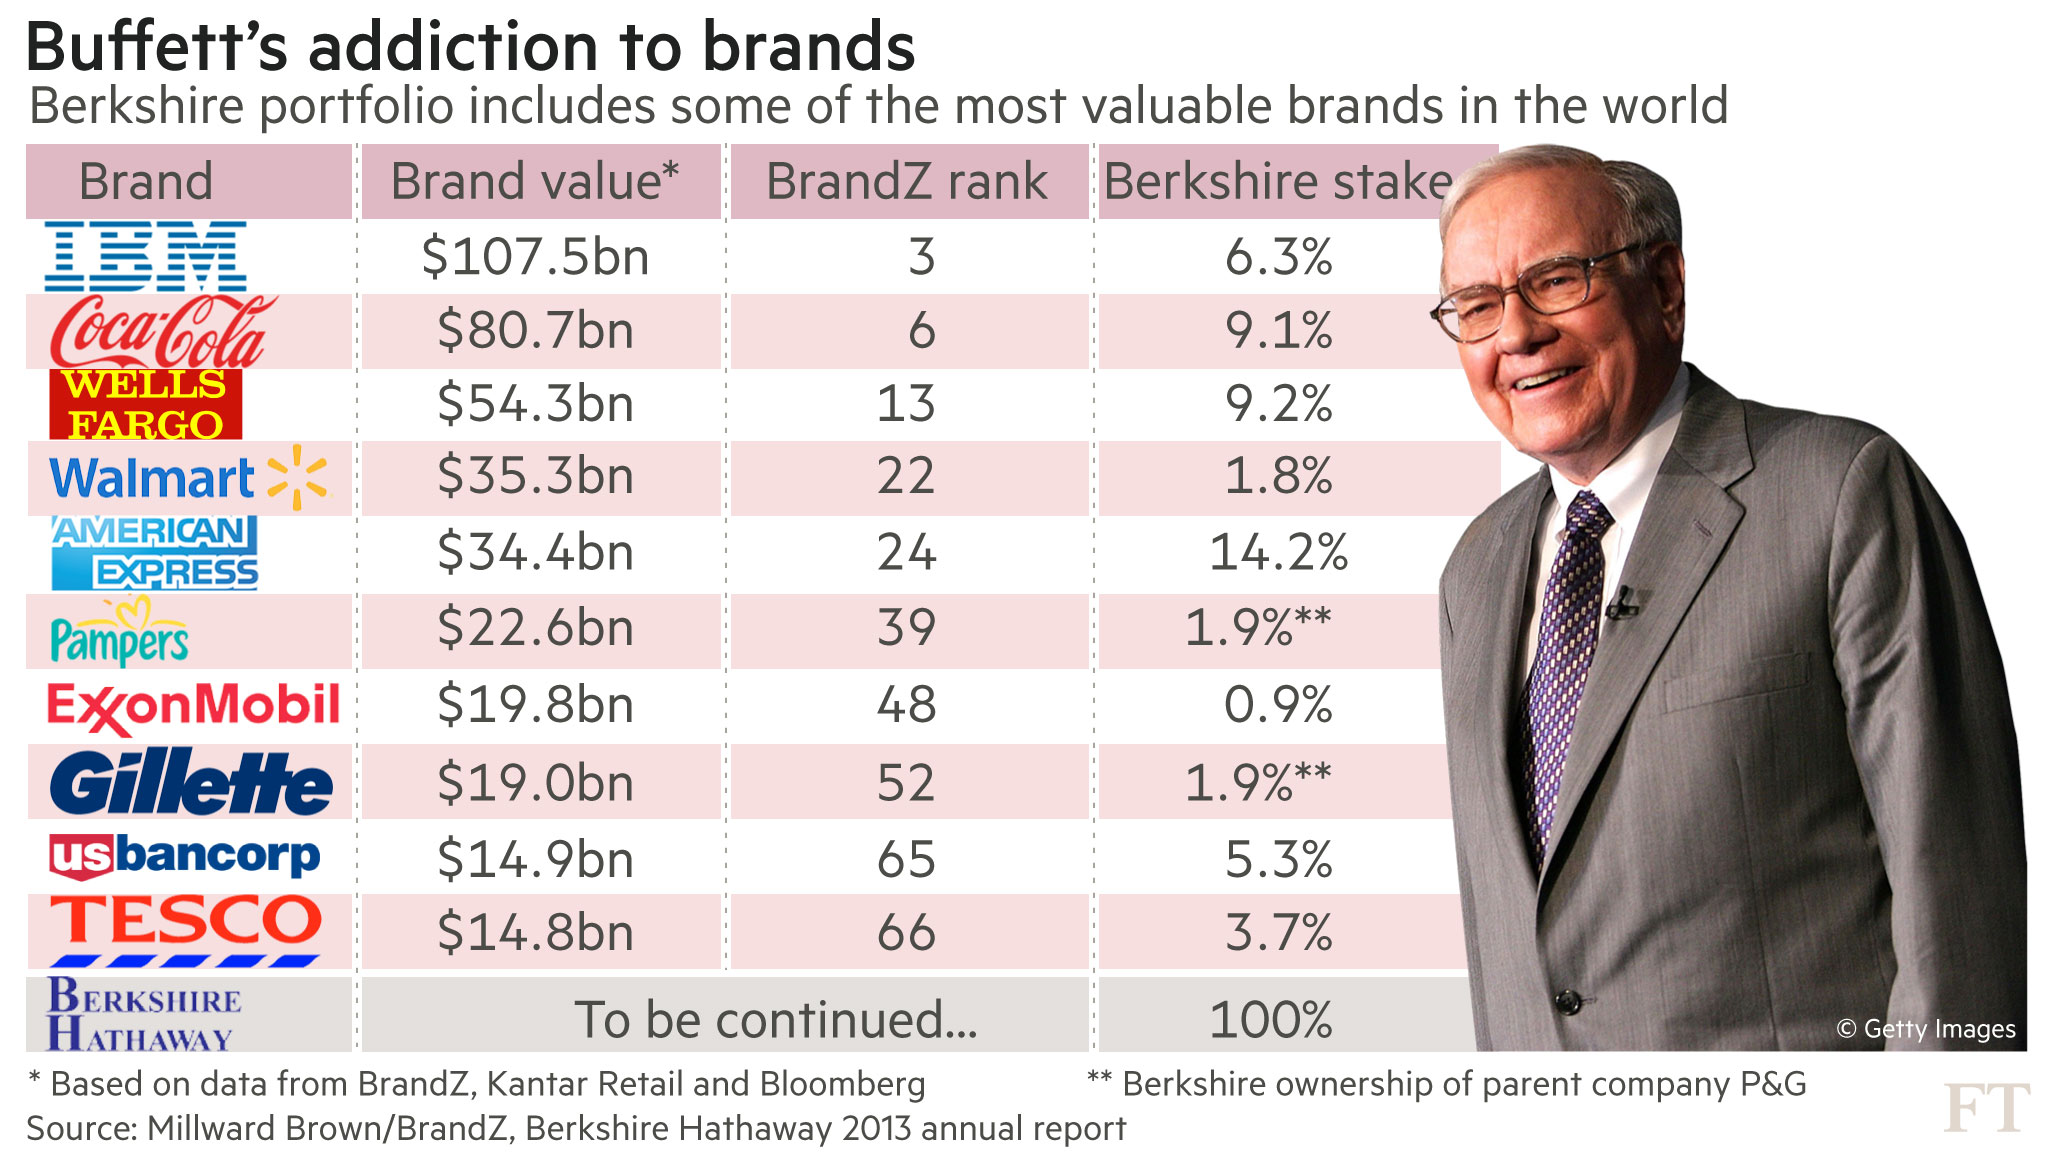 Warren Buffett rolls out the Berkshire Hathaway brand